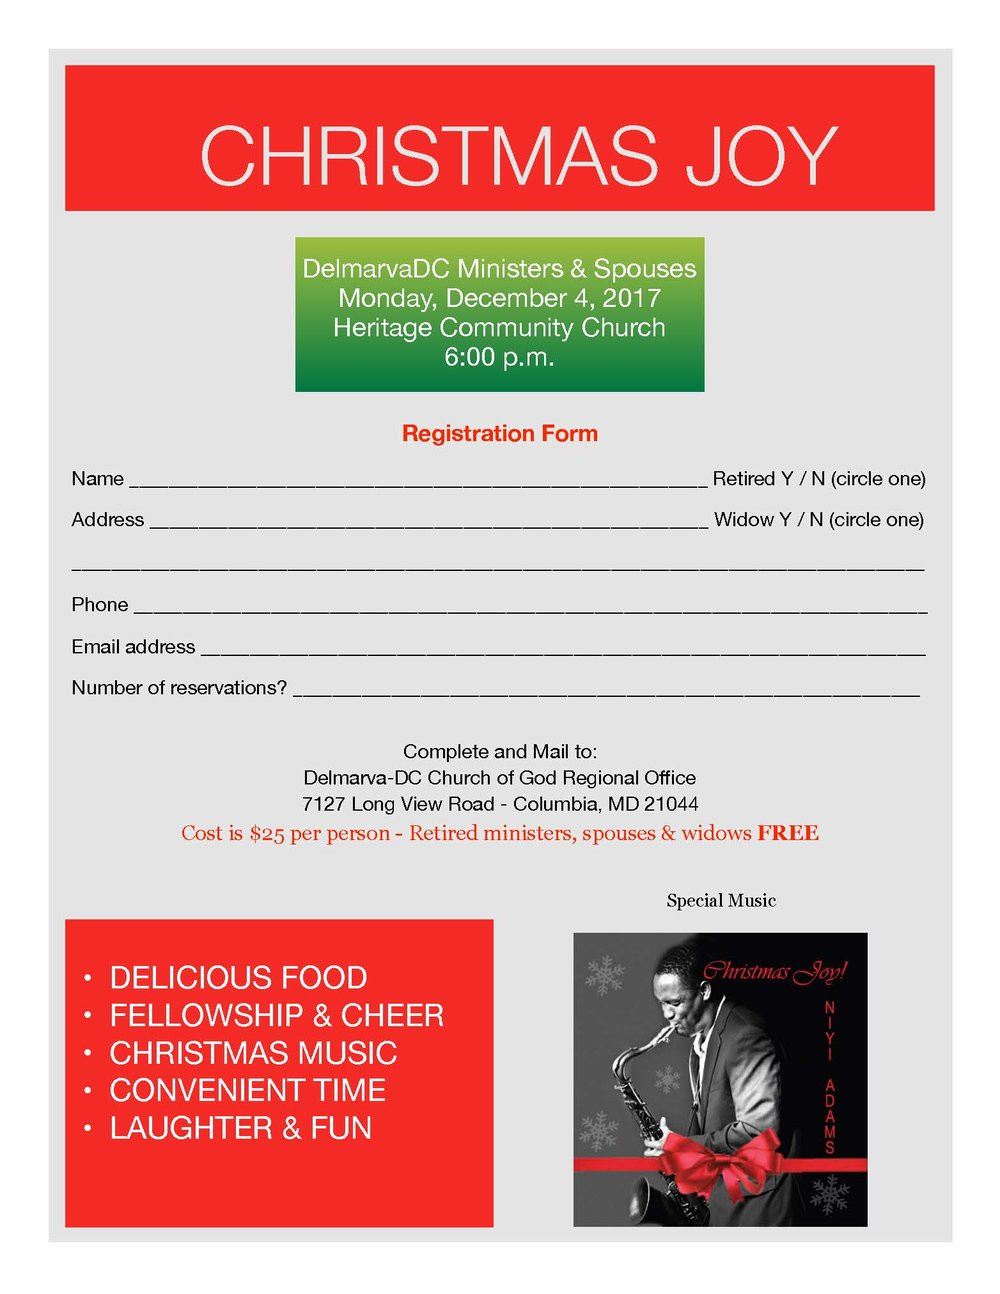 Christmas Luncheon Registration 2017 full page FINAL 10.1.17 OPTIMIZED.jpg